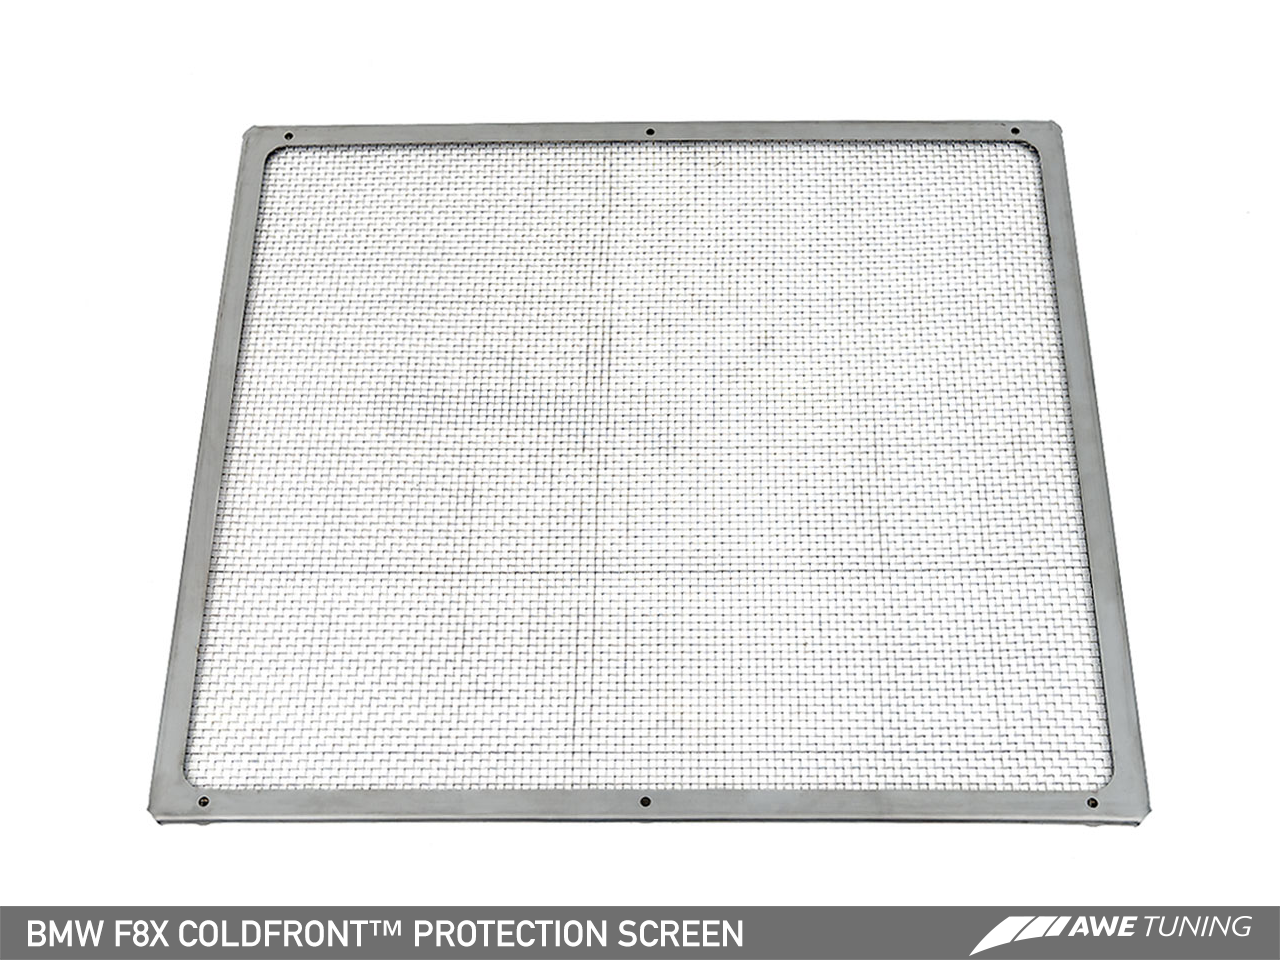 AWE Tuning ColdFront Protection Screen for BMW F8X M3 / M4